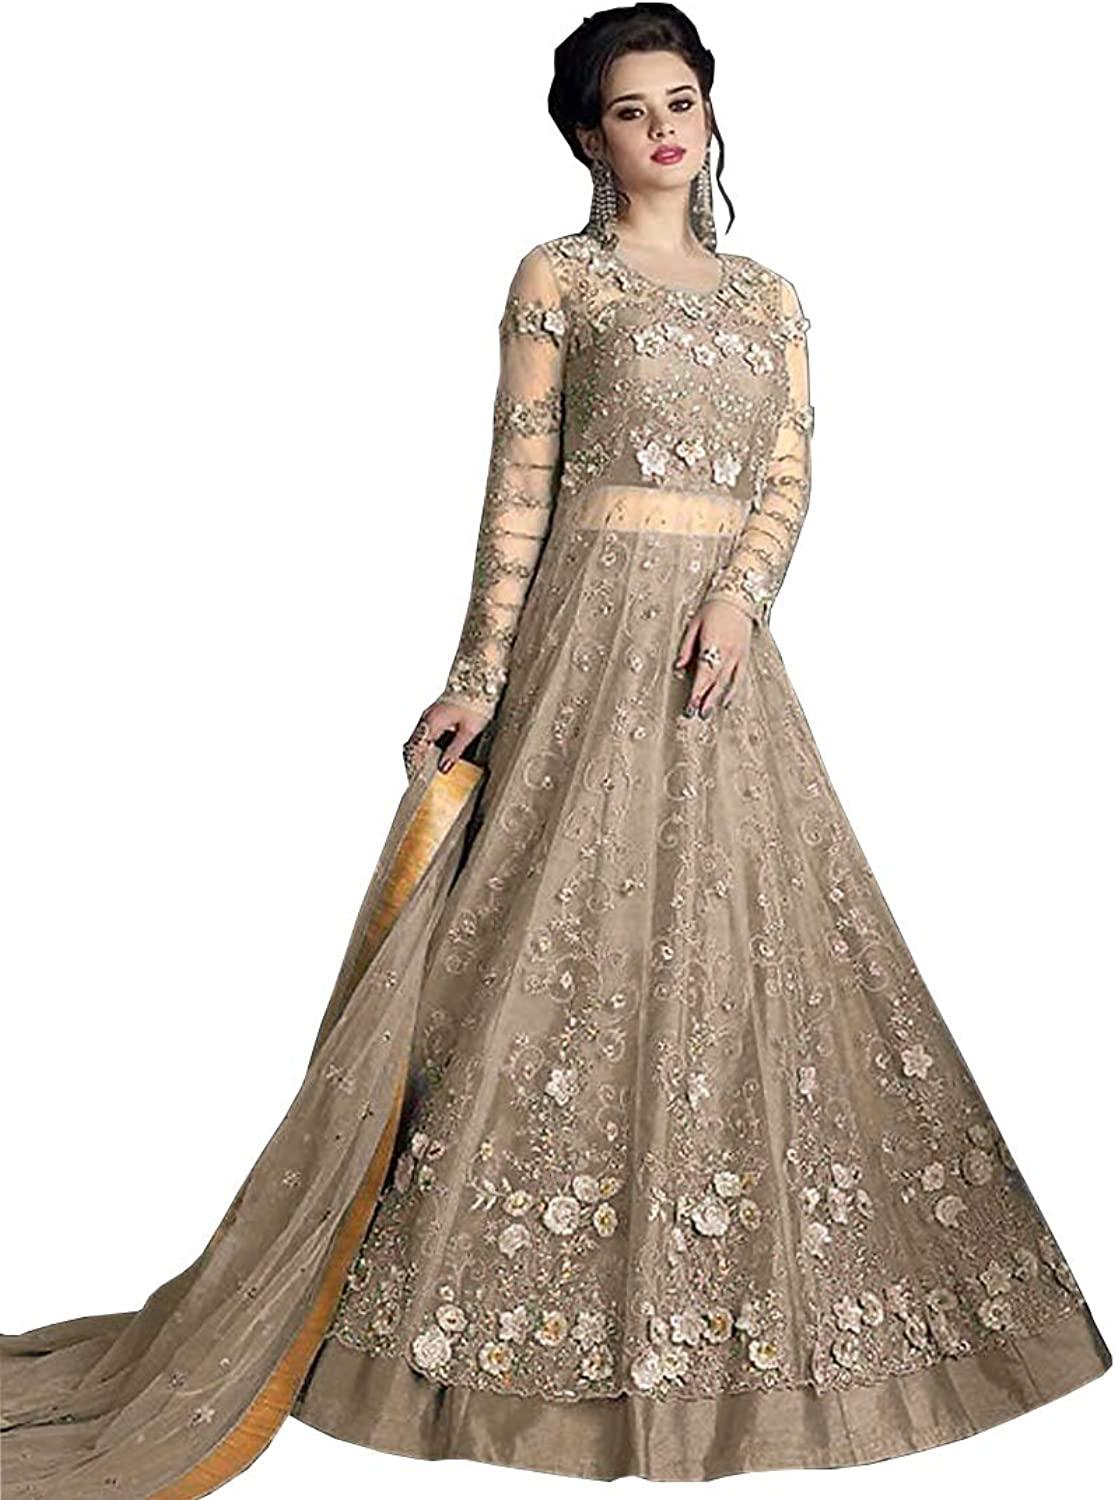 AMIT FASHIONS Exclusive Indian Designer Semi Stitch Salwar Suit for Women's Brown